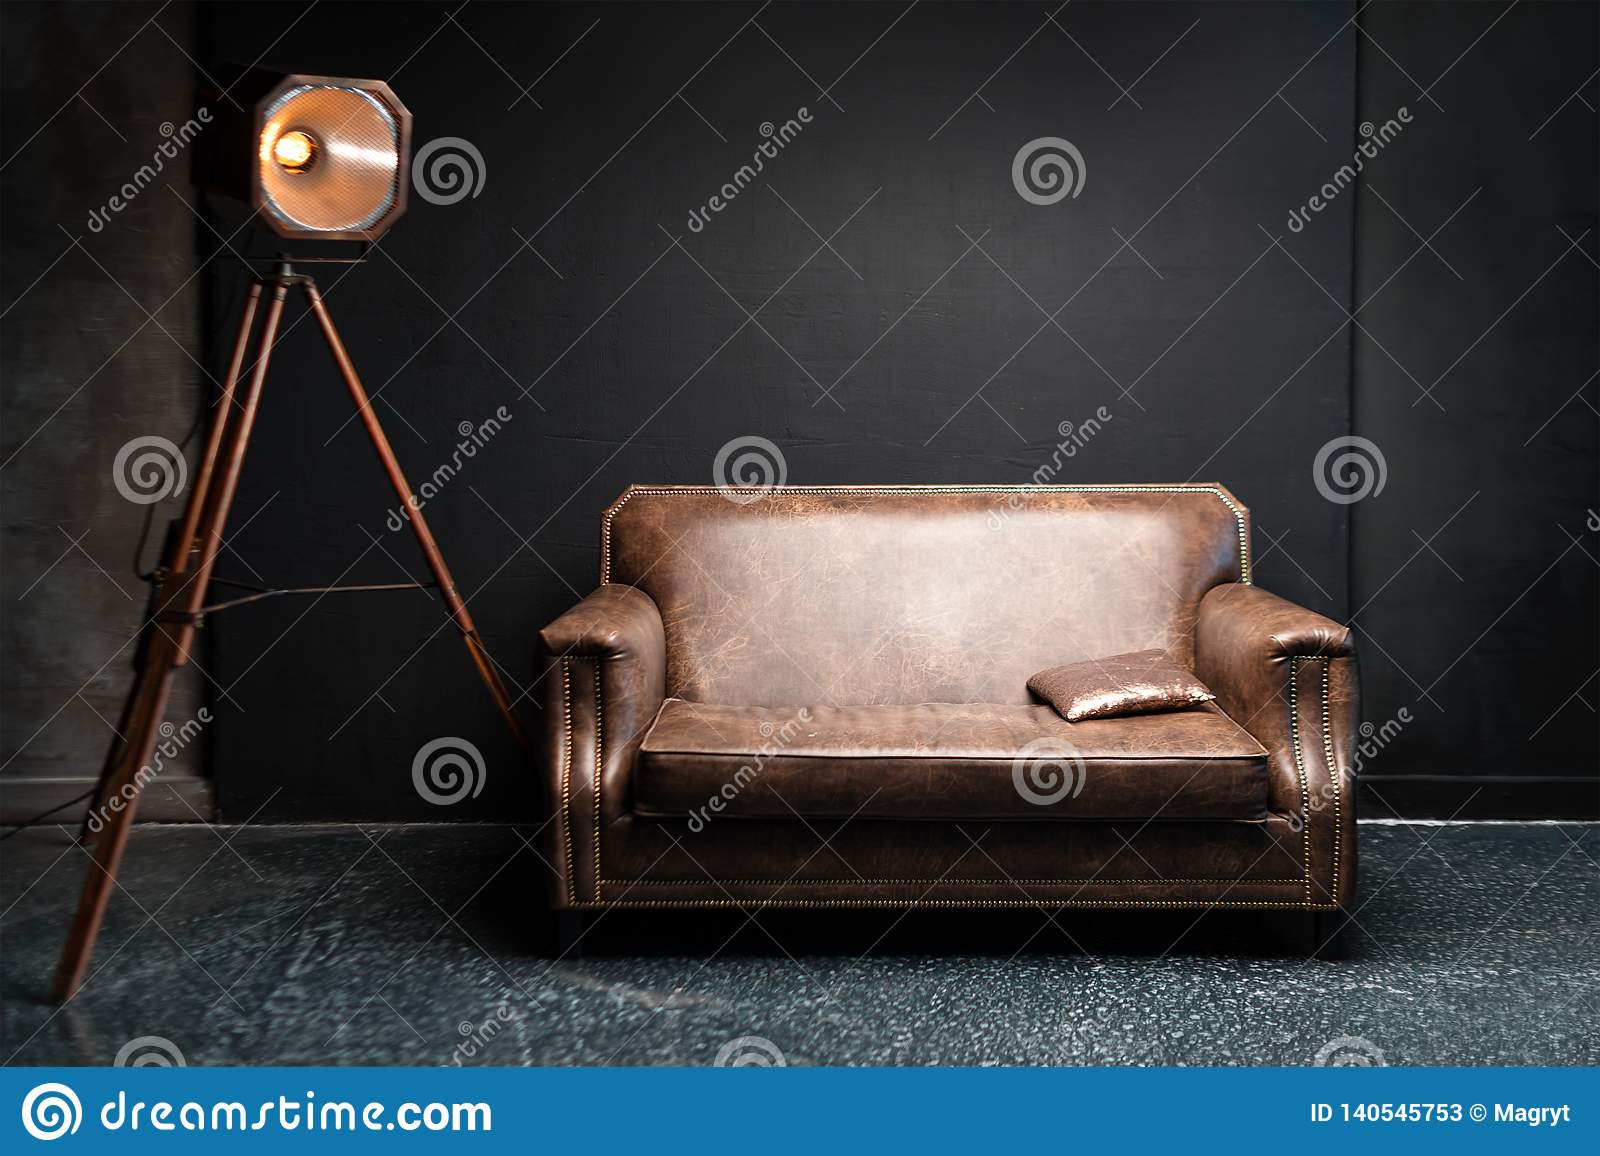 Incredible Brown Leather Sofa In Dark Loft Interior Cement Black Unemploymentrelief Wooden Chair Designs For Living Room Unemploymentrelieforg